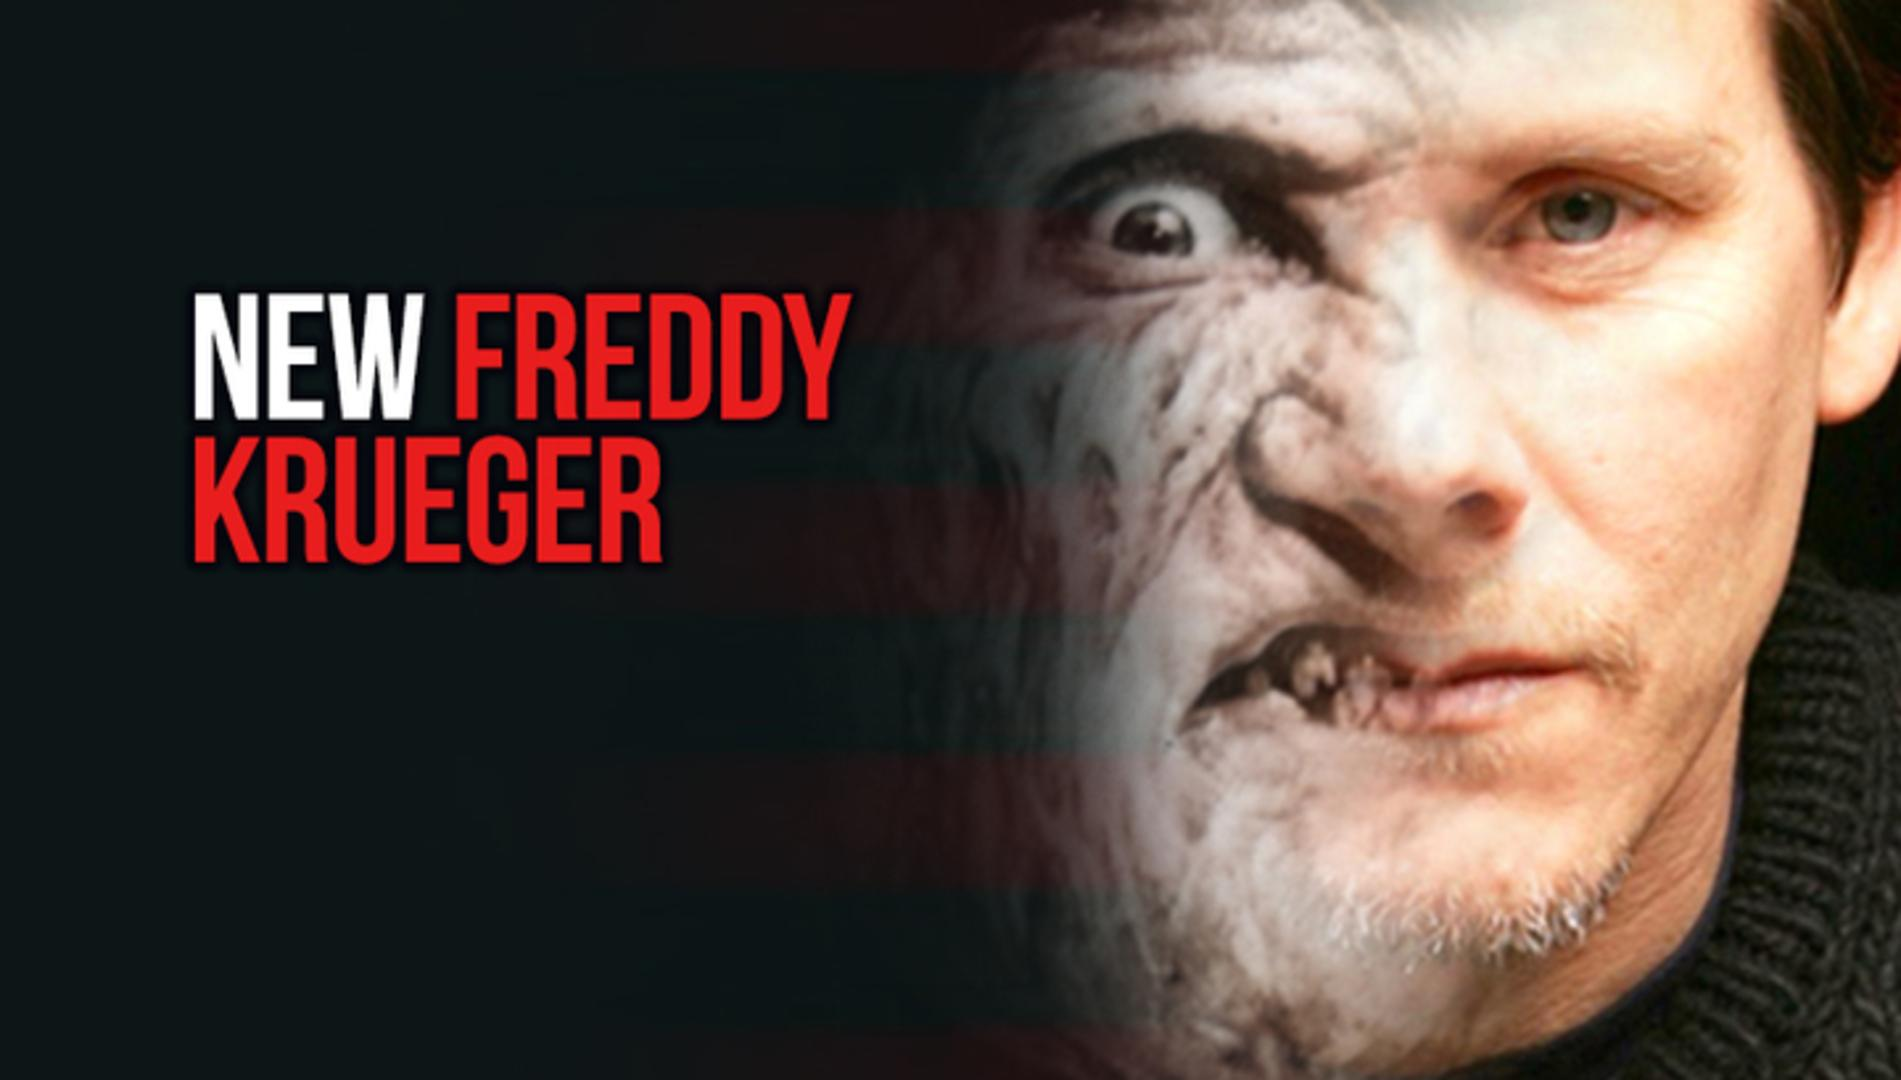 Kevin Bacon Wants To Play Freddy Krueger